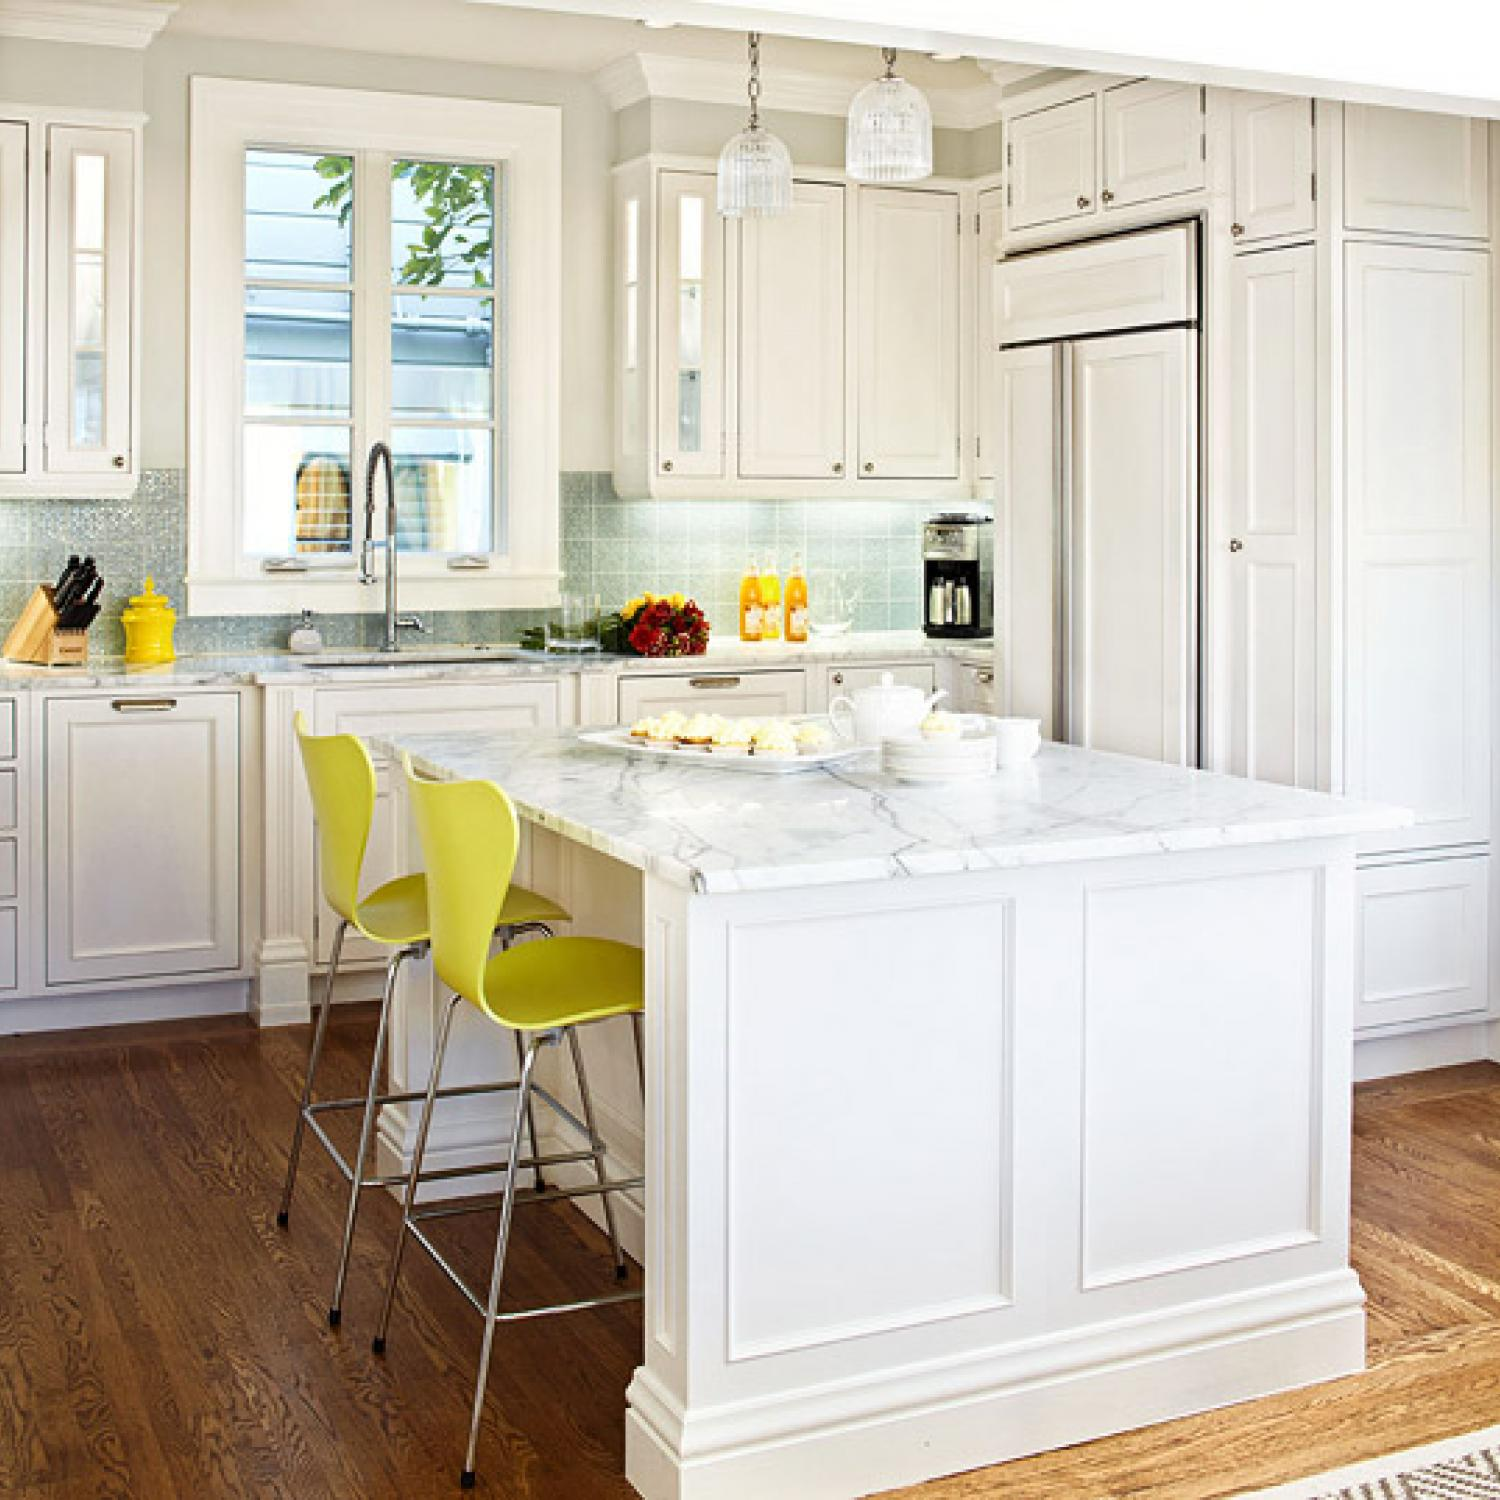 Design ideas for white kitchens traditional home for Kitchen suggestions